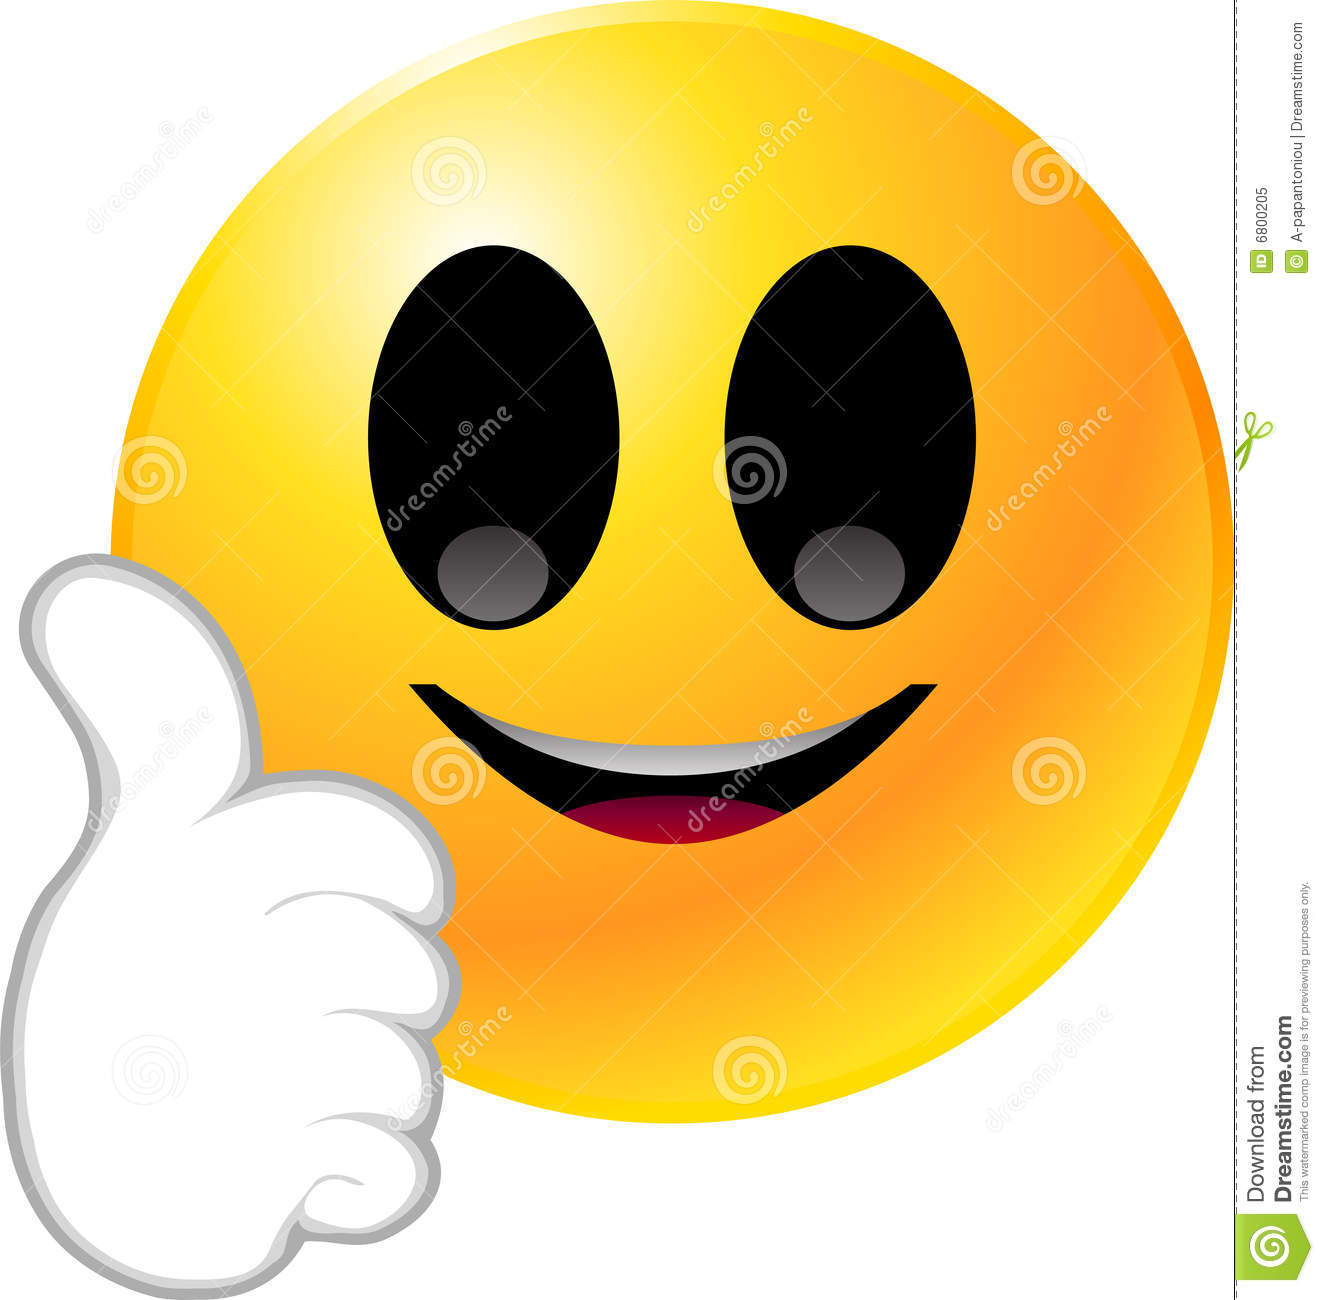 smiley%20face%20thumbs%20up%20black%20and%20white